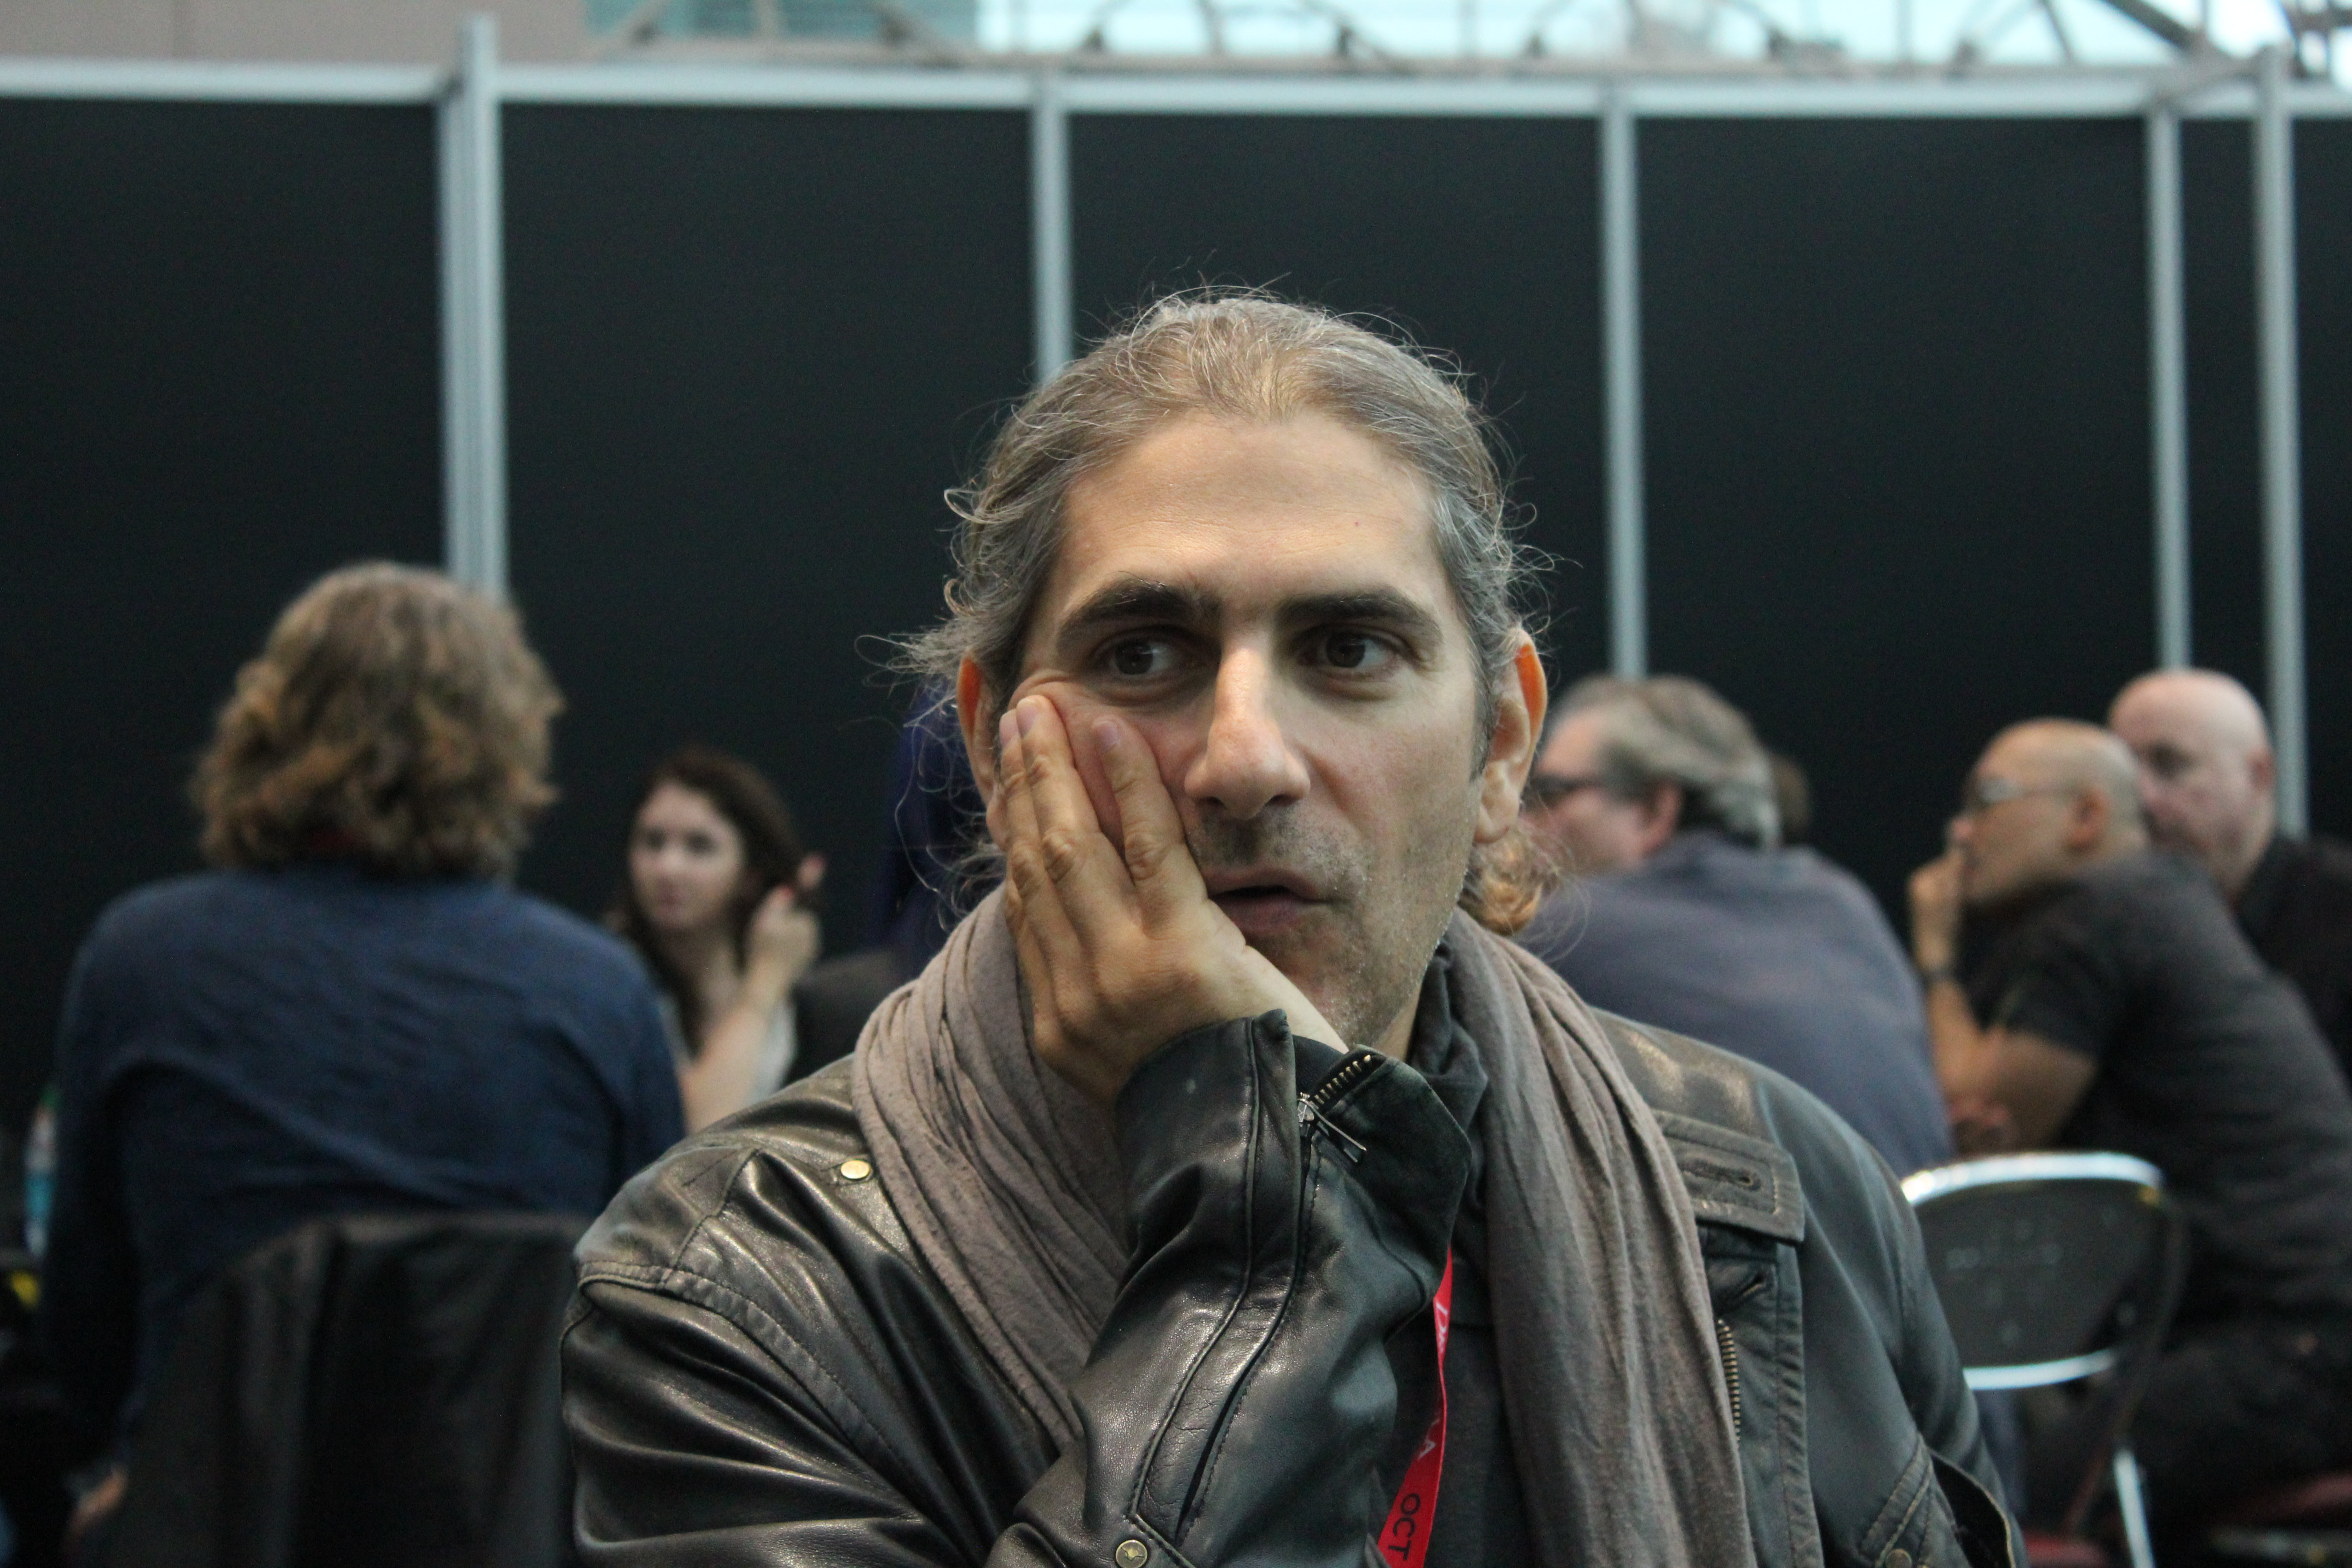 FanBrosShow Interviews Michael Imperioli About OldBoy